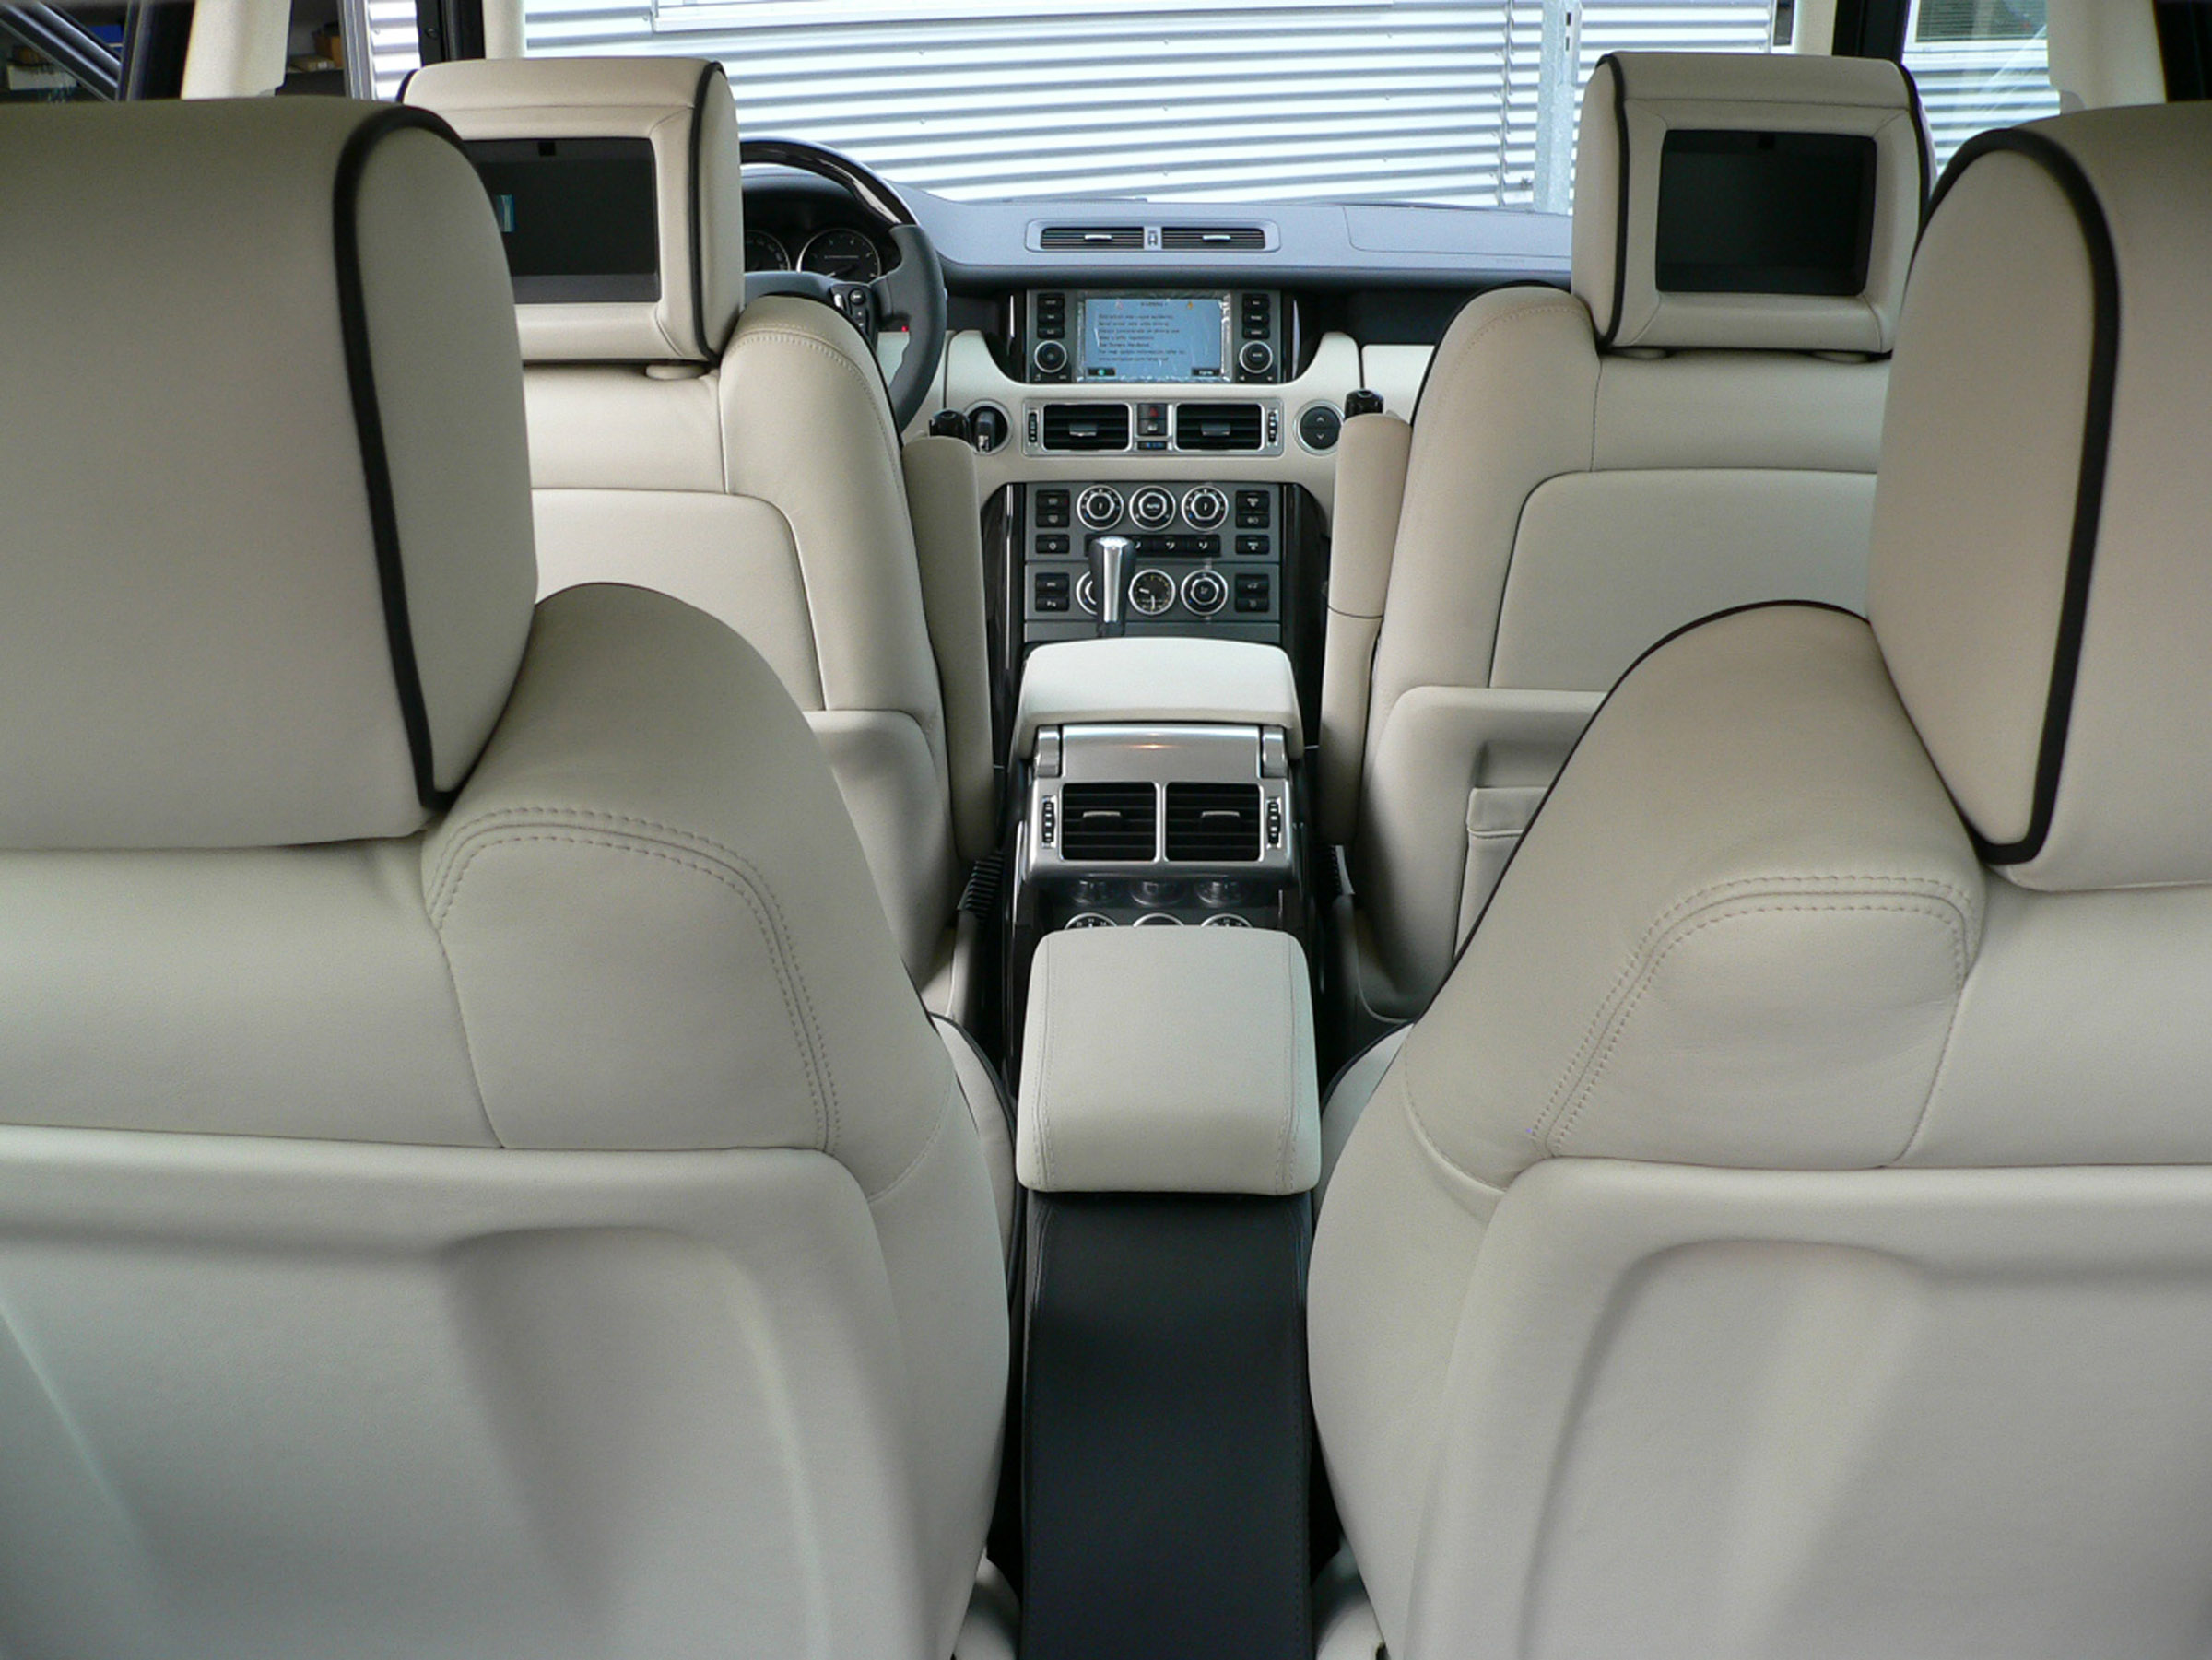 Art Tuning Offers More Comfort And Features For The Range